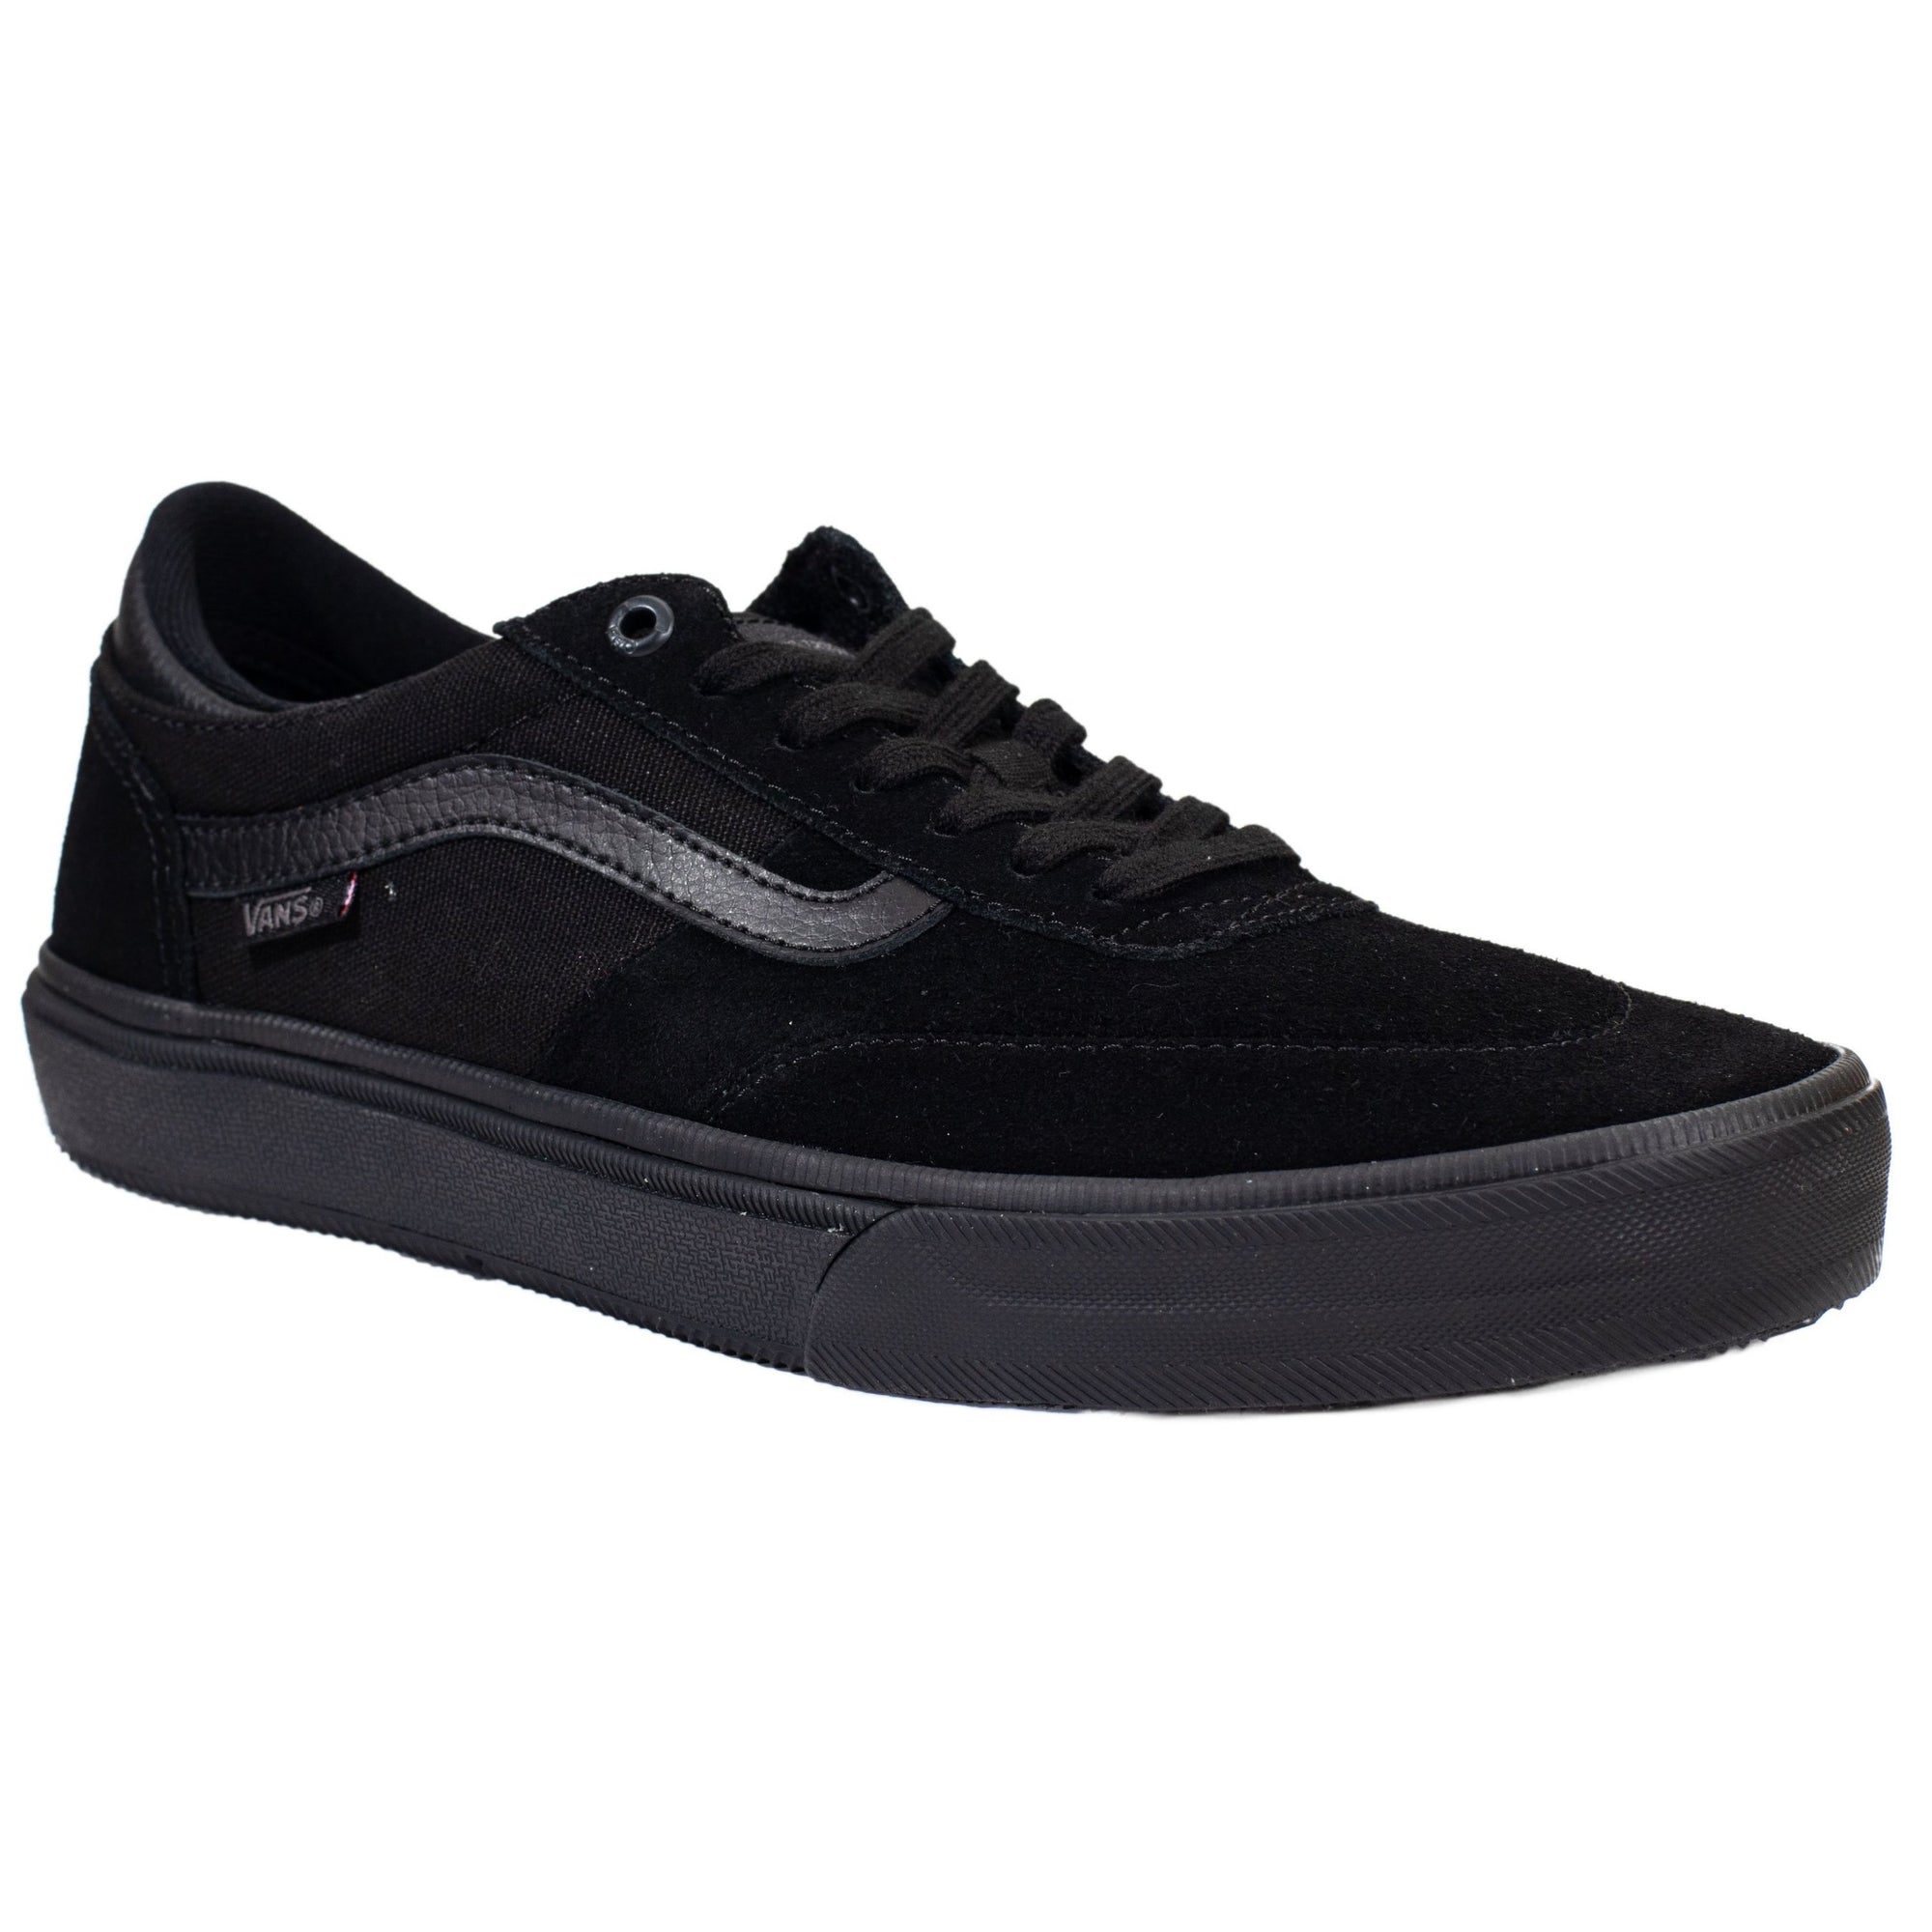 c69263be7ce1 Vans Gilbert Crockett Pro 2 - (Suede) Blackout - Chane